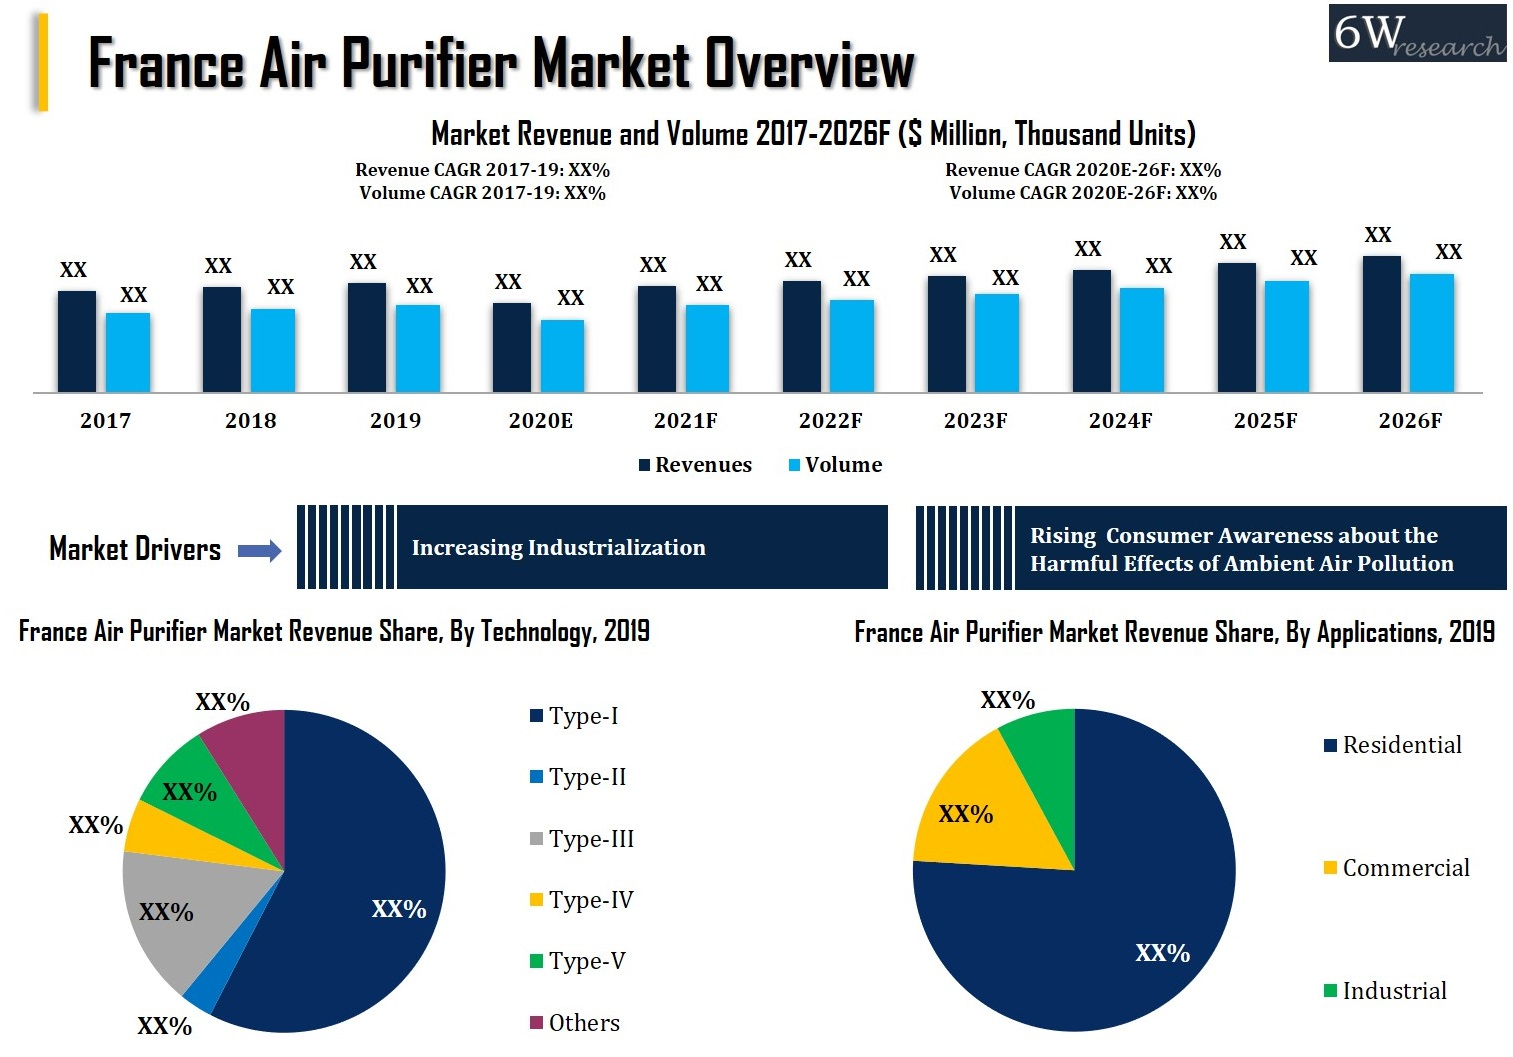 France Air Purifier Market